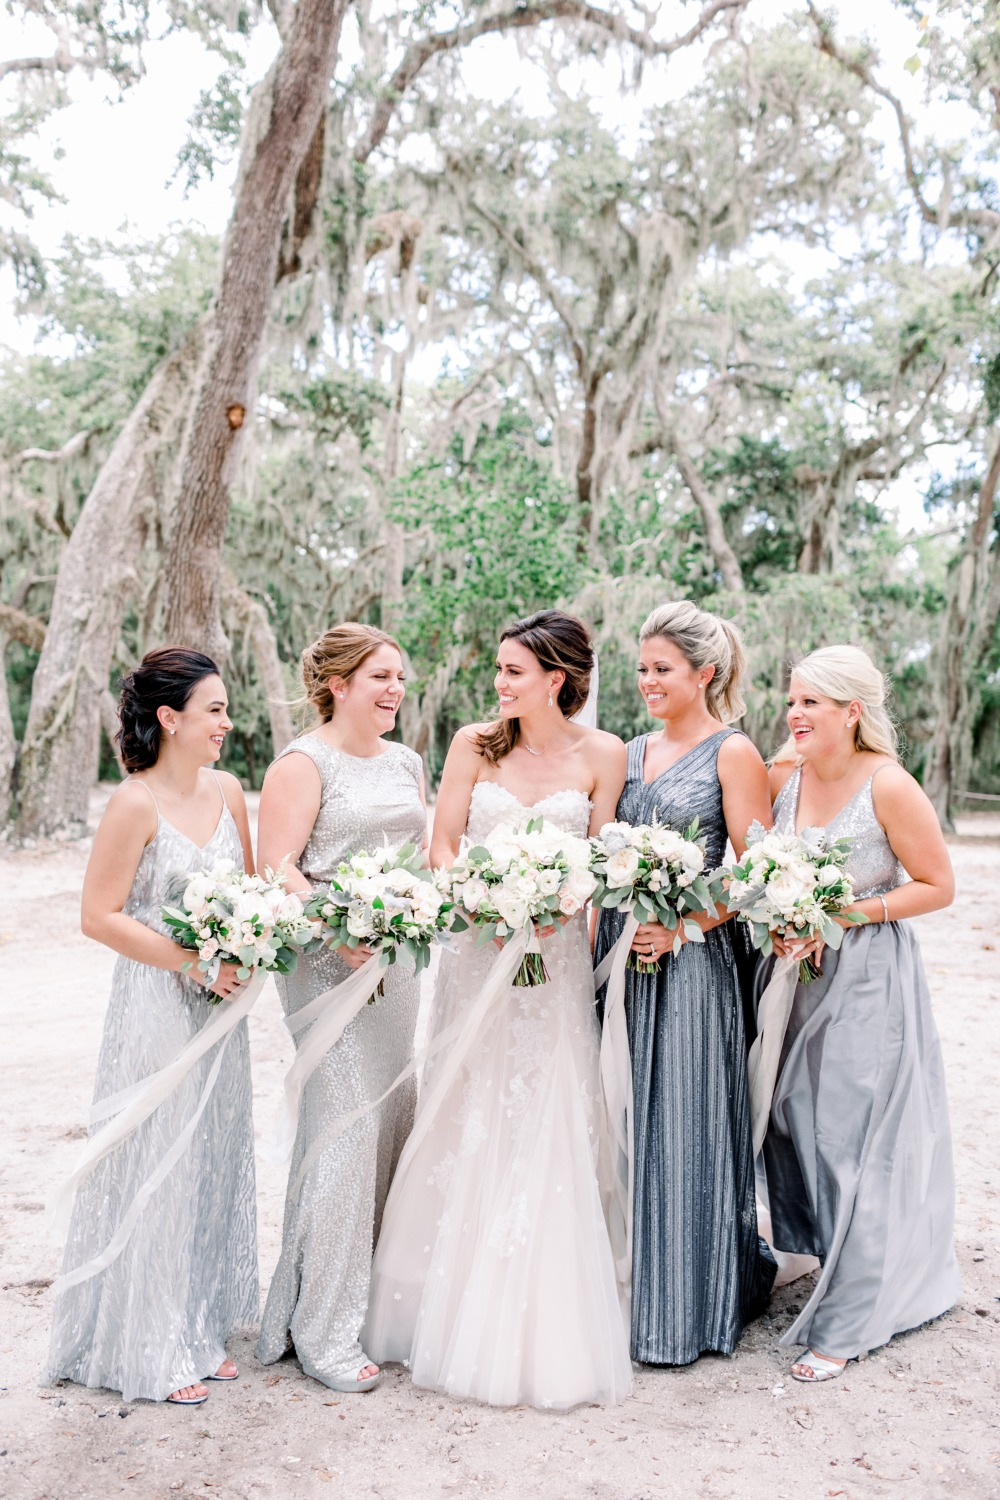 Bridesmaids shimmer in silver